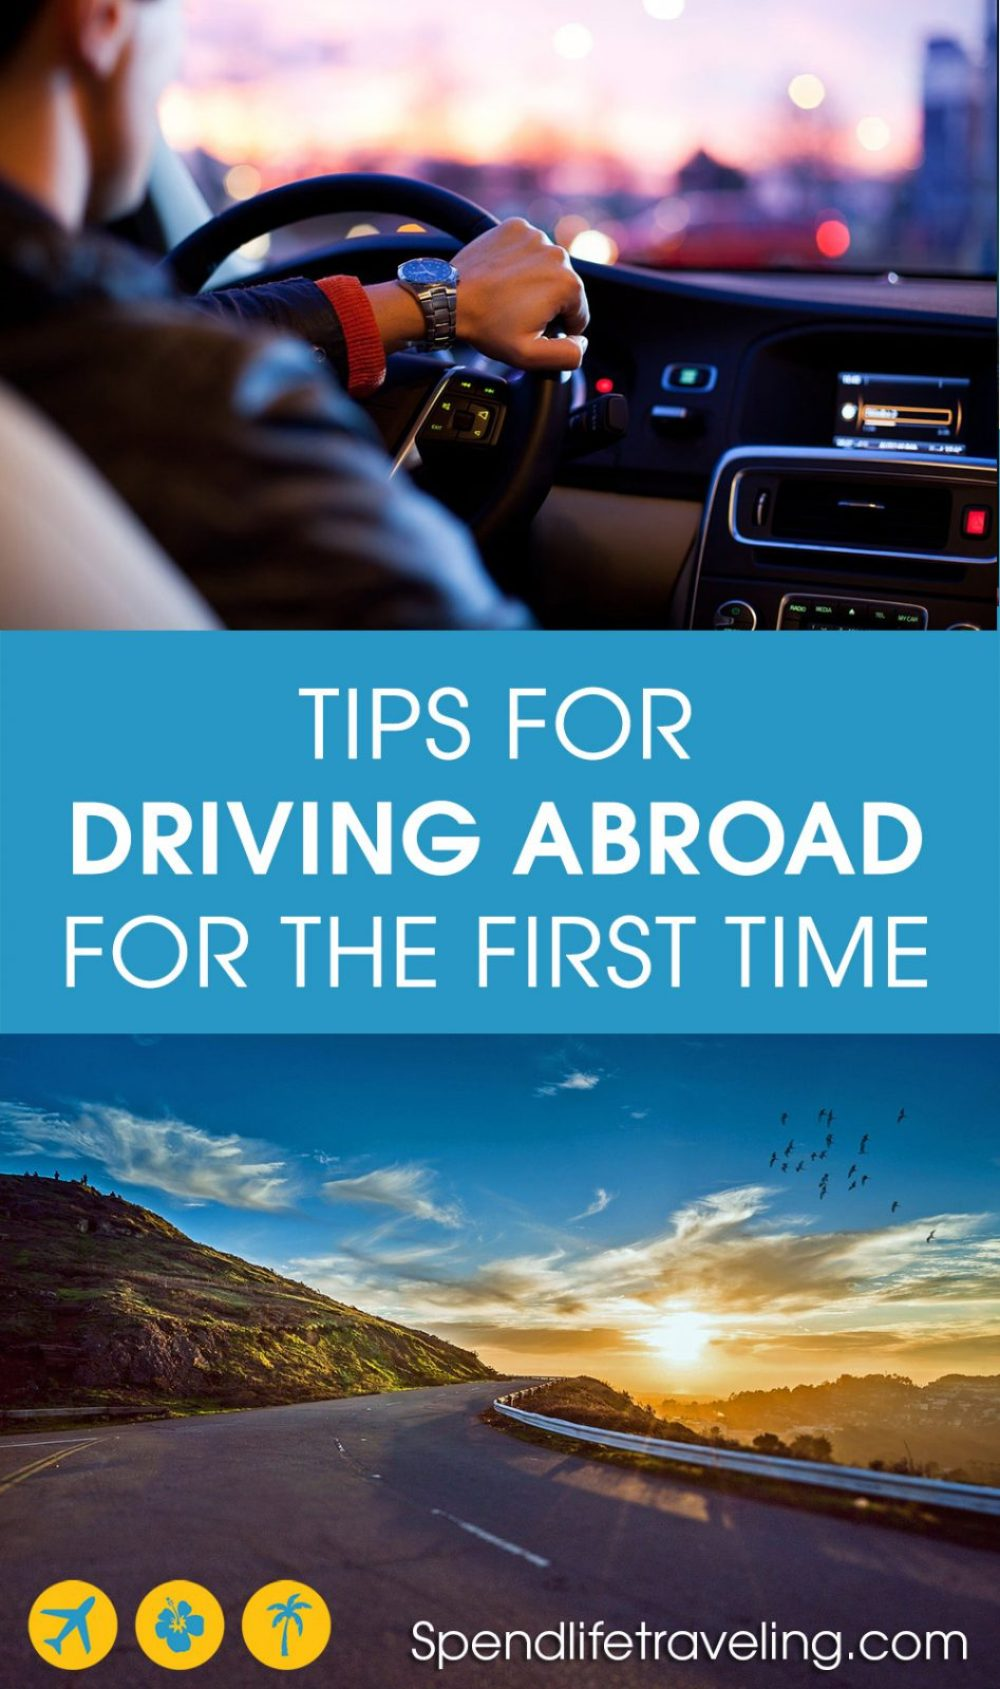 Are you planning to drive in a foreign country? Check out these practical tips to make your experience driving abroad a good one! #driveabroad #roadtrip #drivingabroad #drivingoverseas